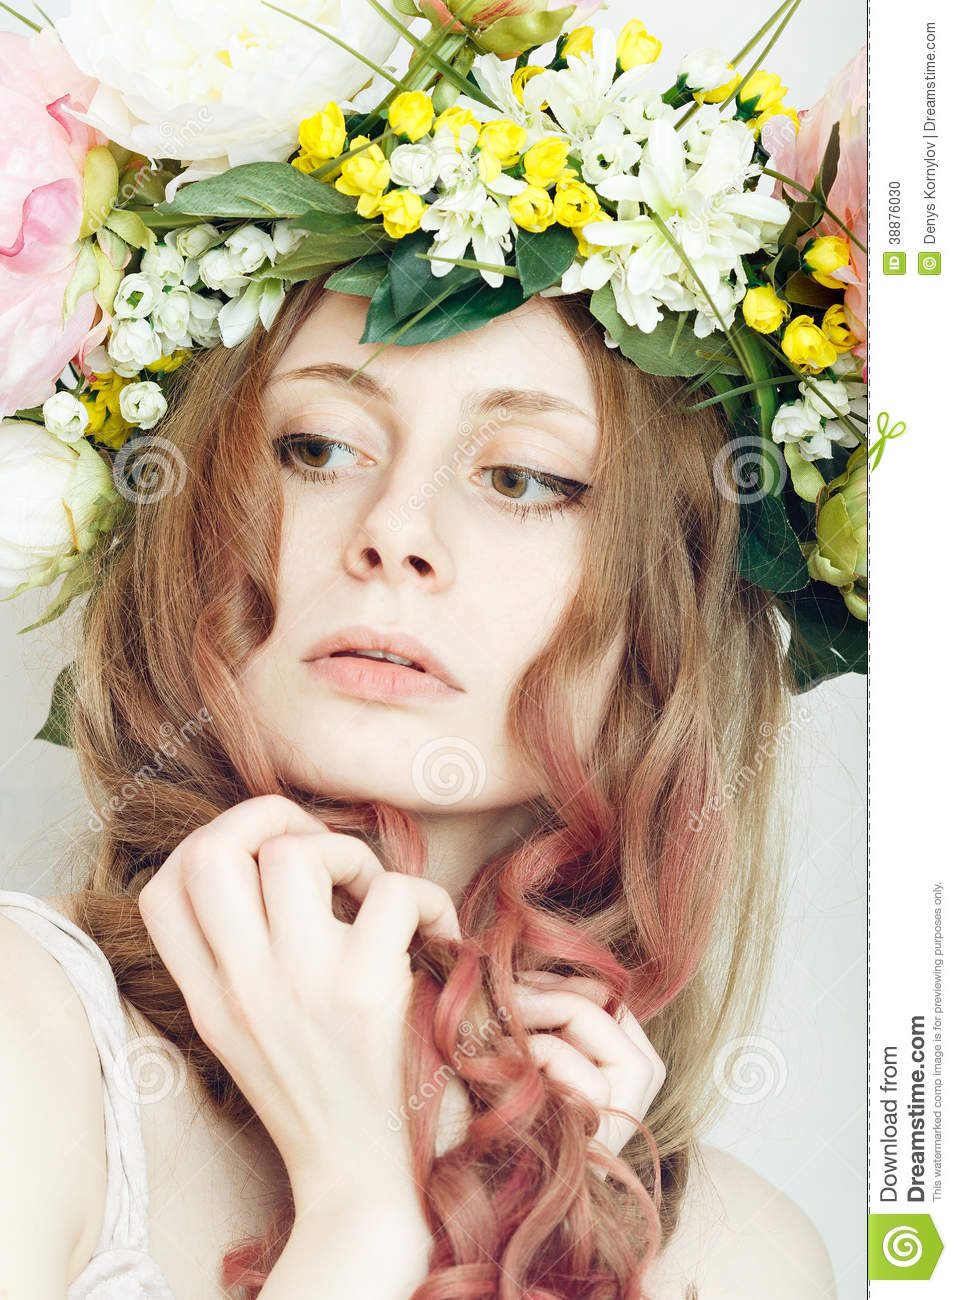 Pretty Girl With Flower Crown On Head Stock Photo Image Of